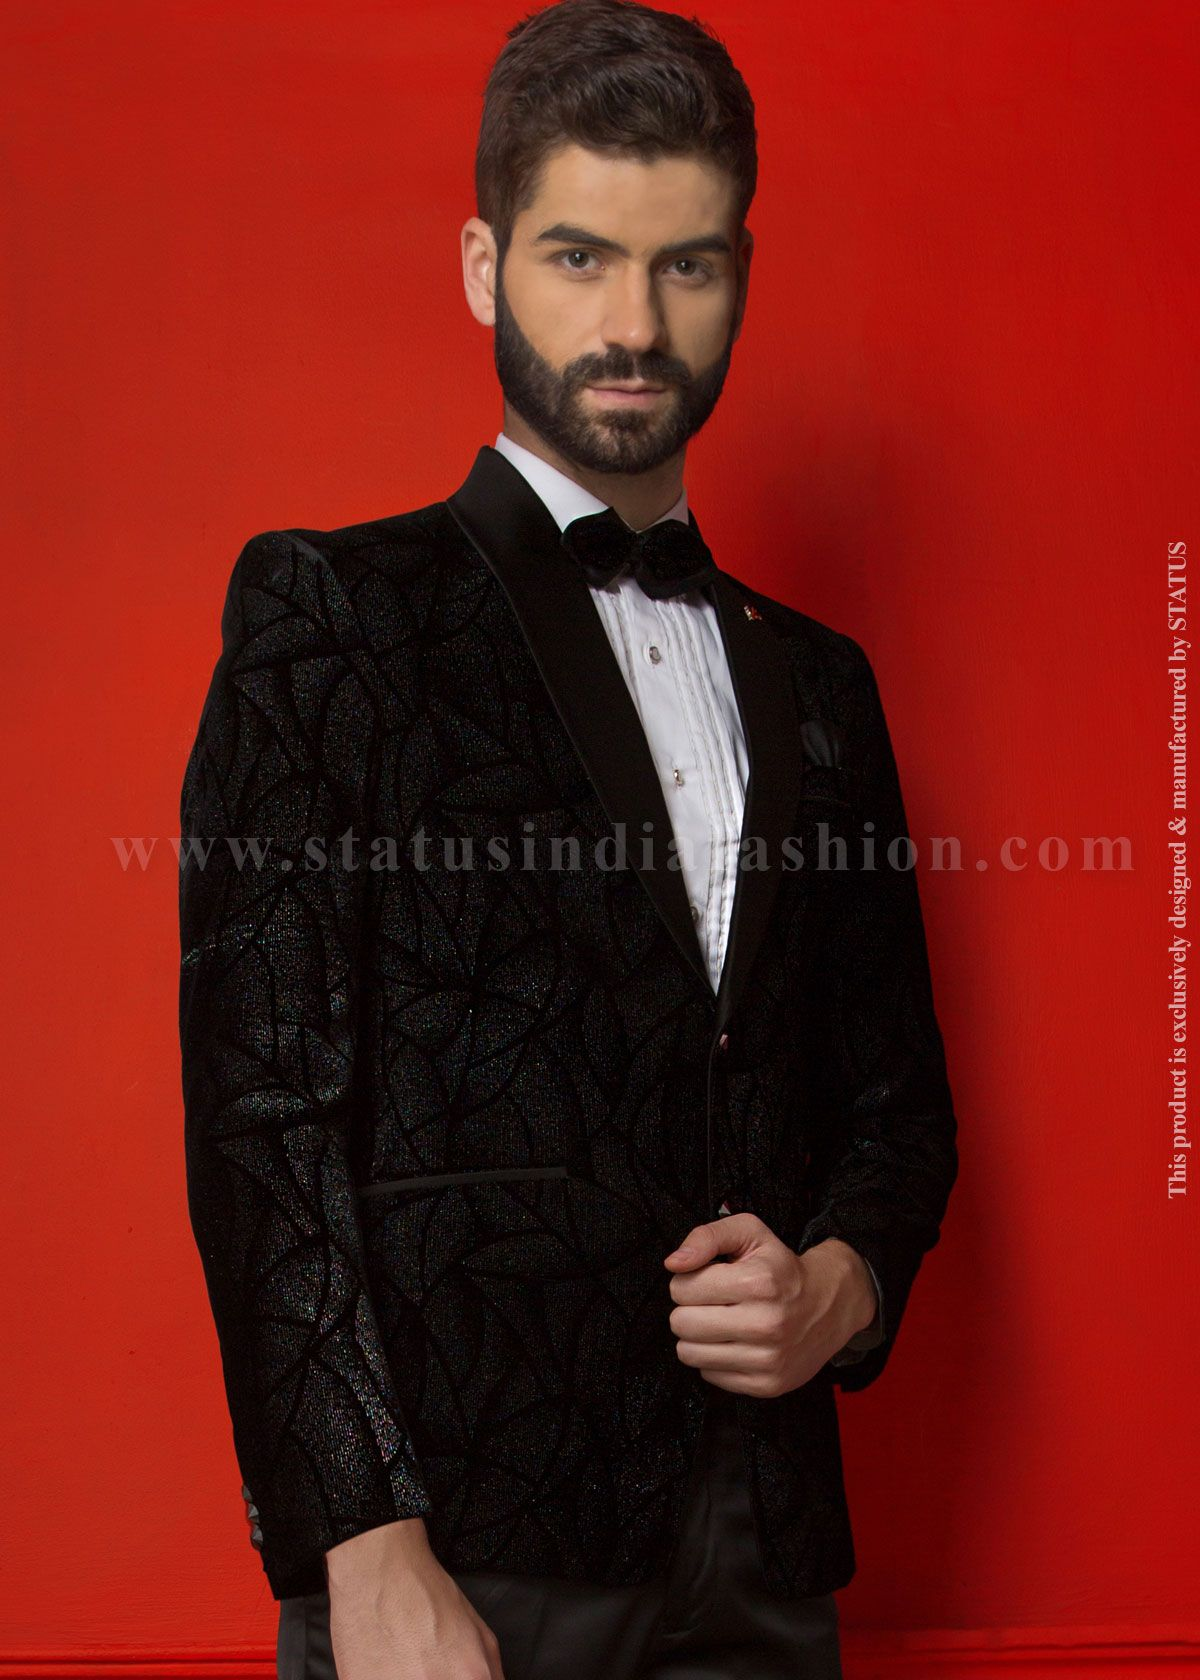 Mens Designer suit, wedding suit, groom suits, blazer suit ...